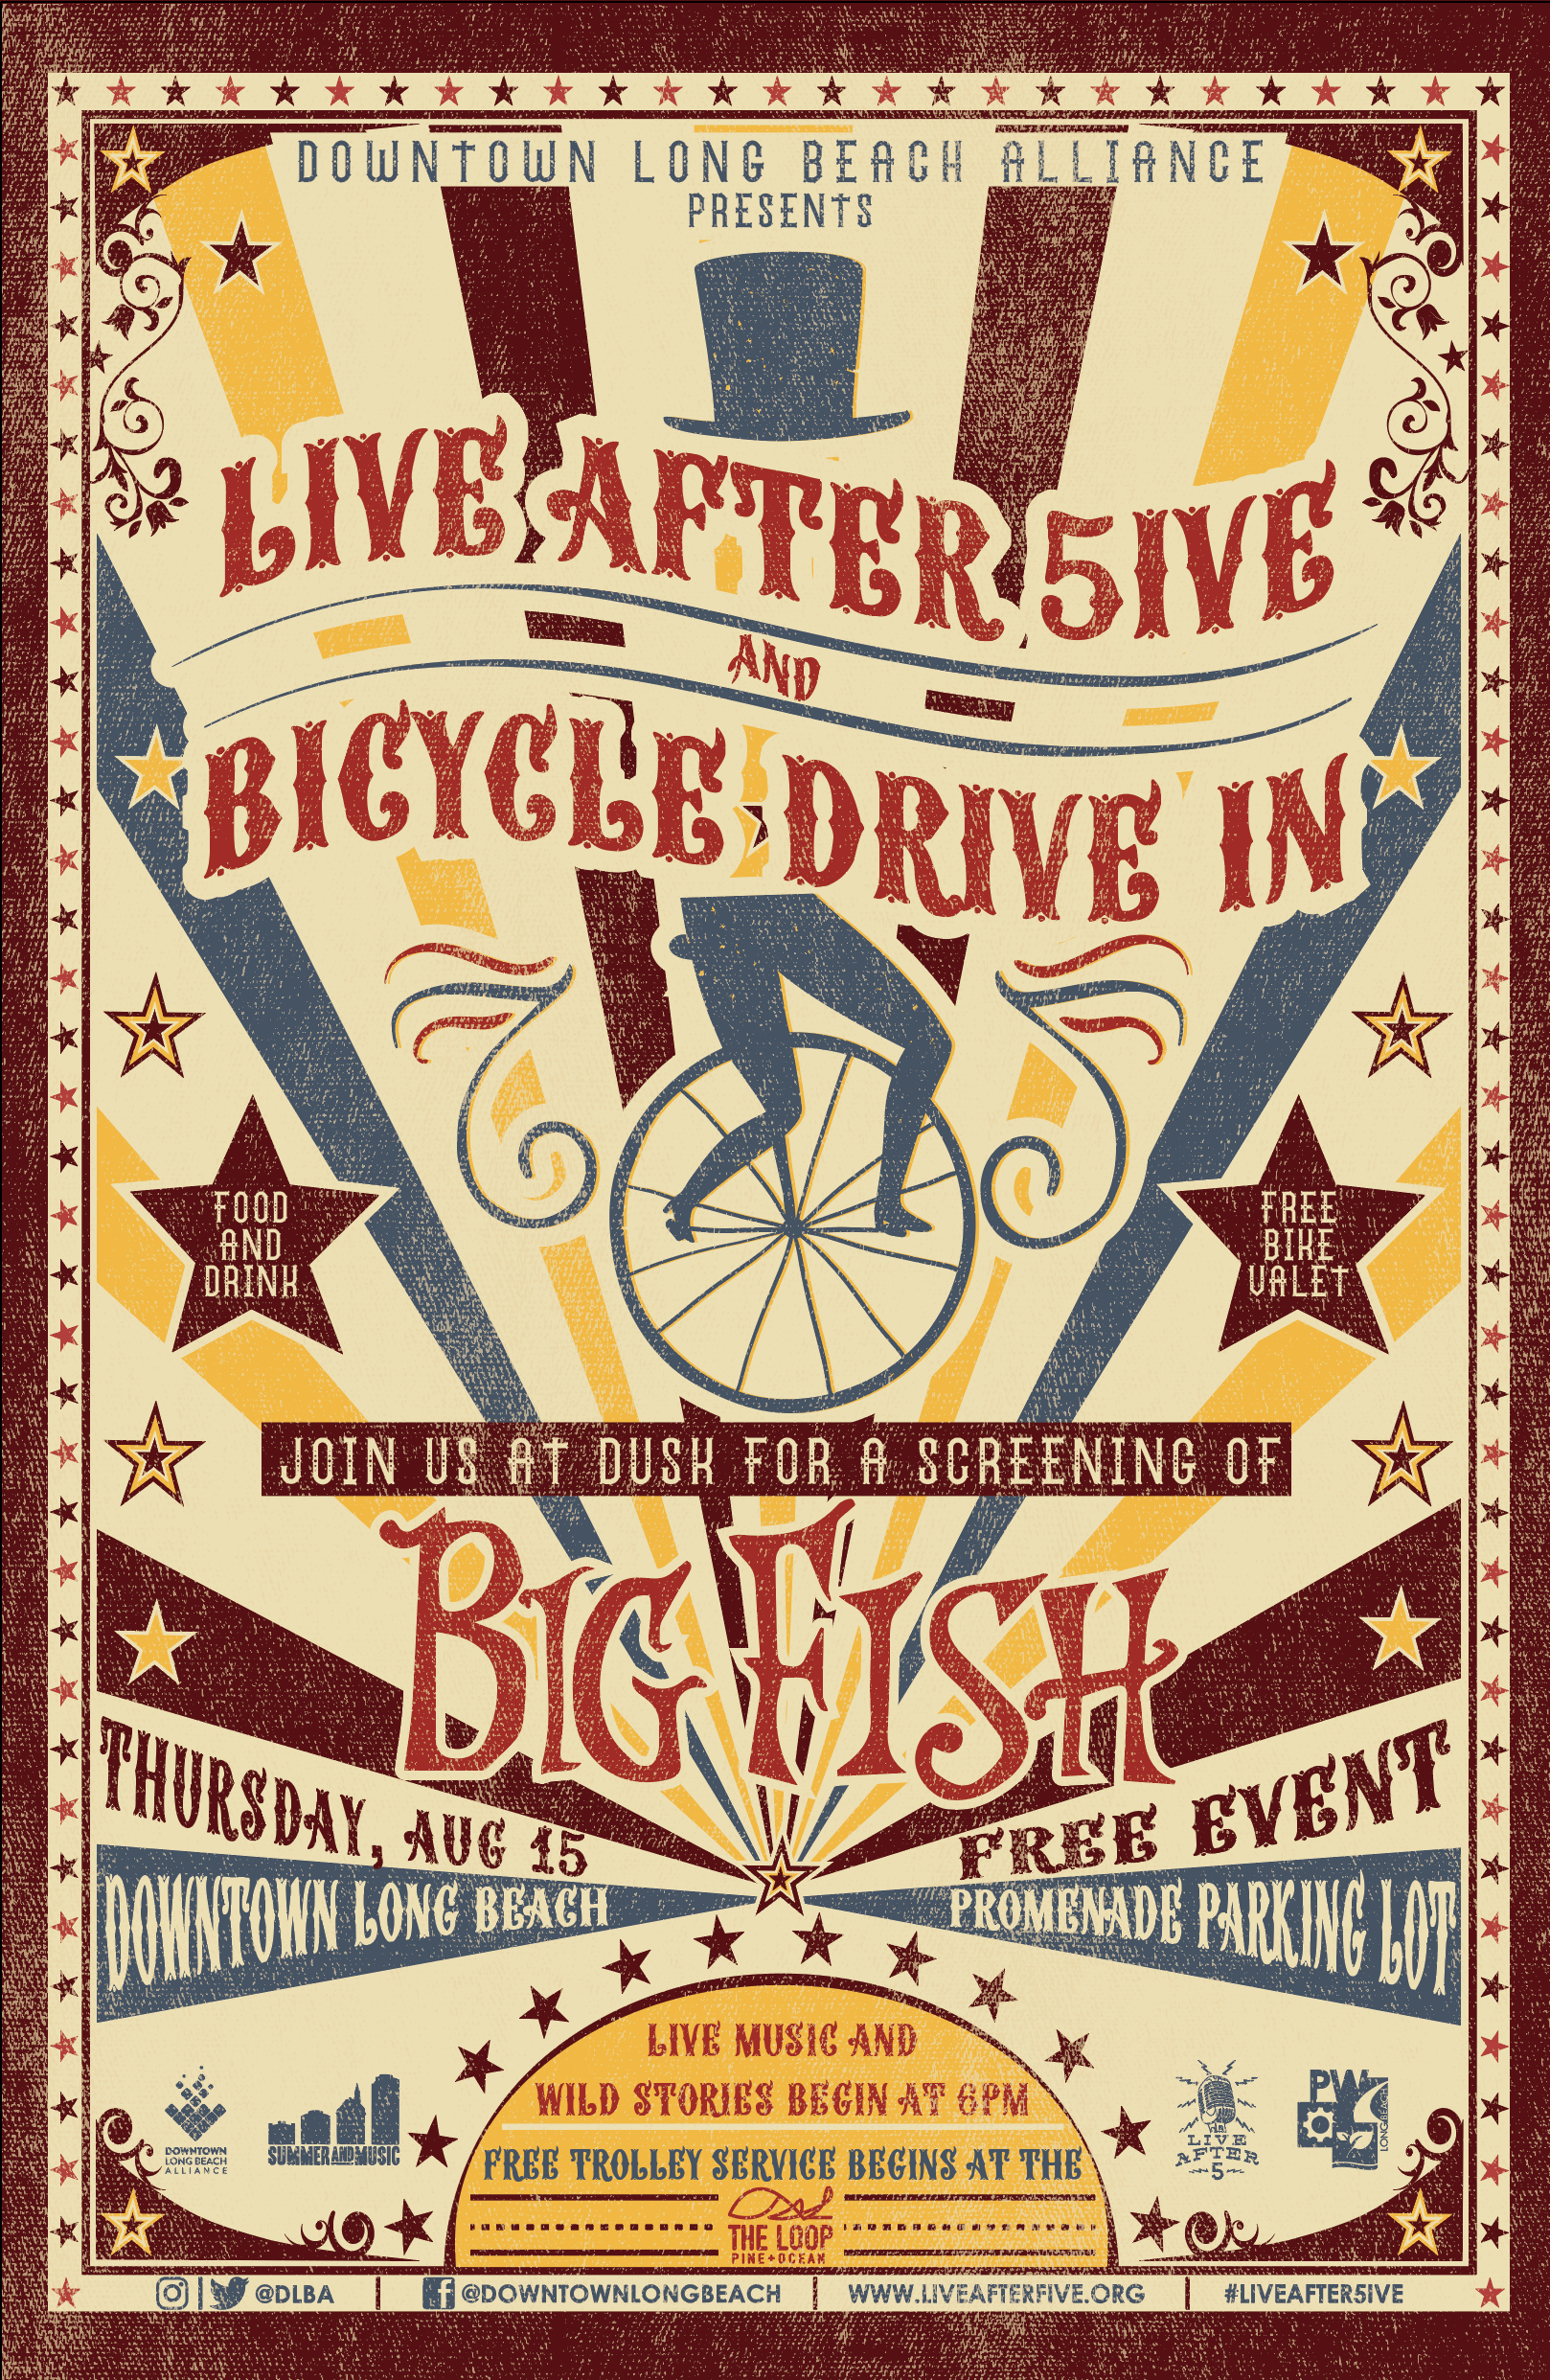 Bicycle_Drivein_Poster2_Revised.png